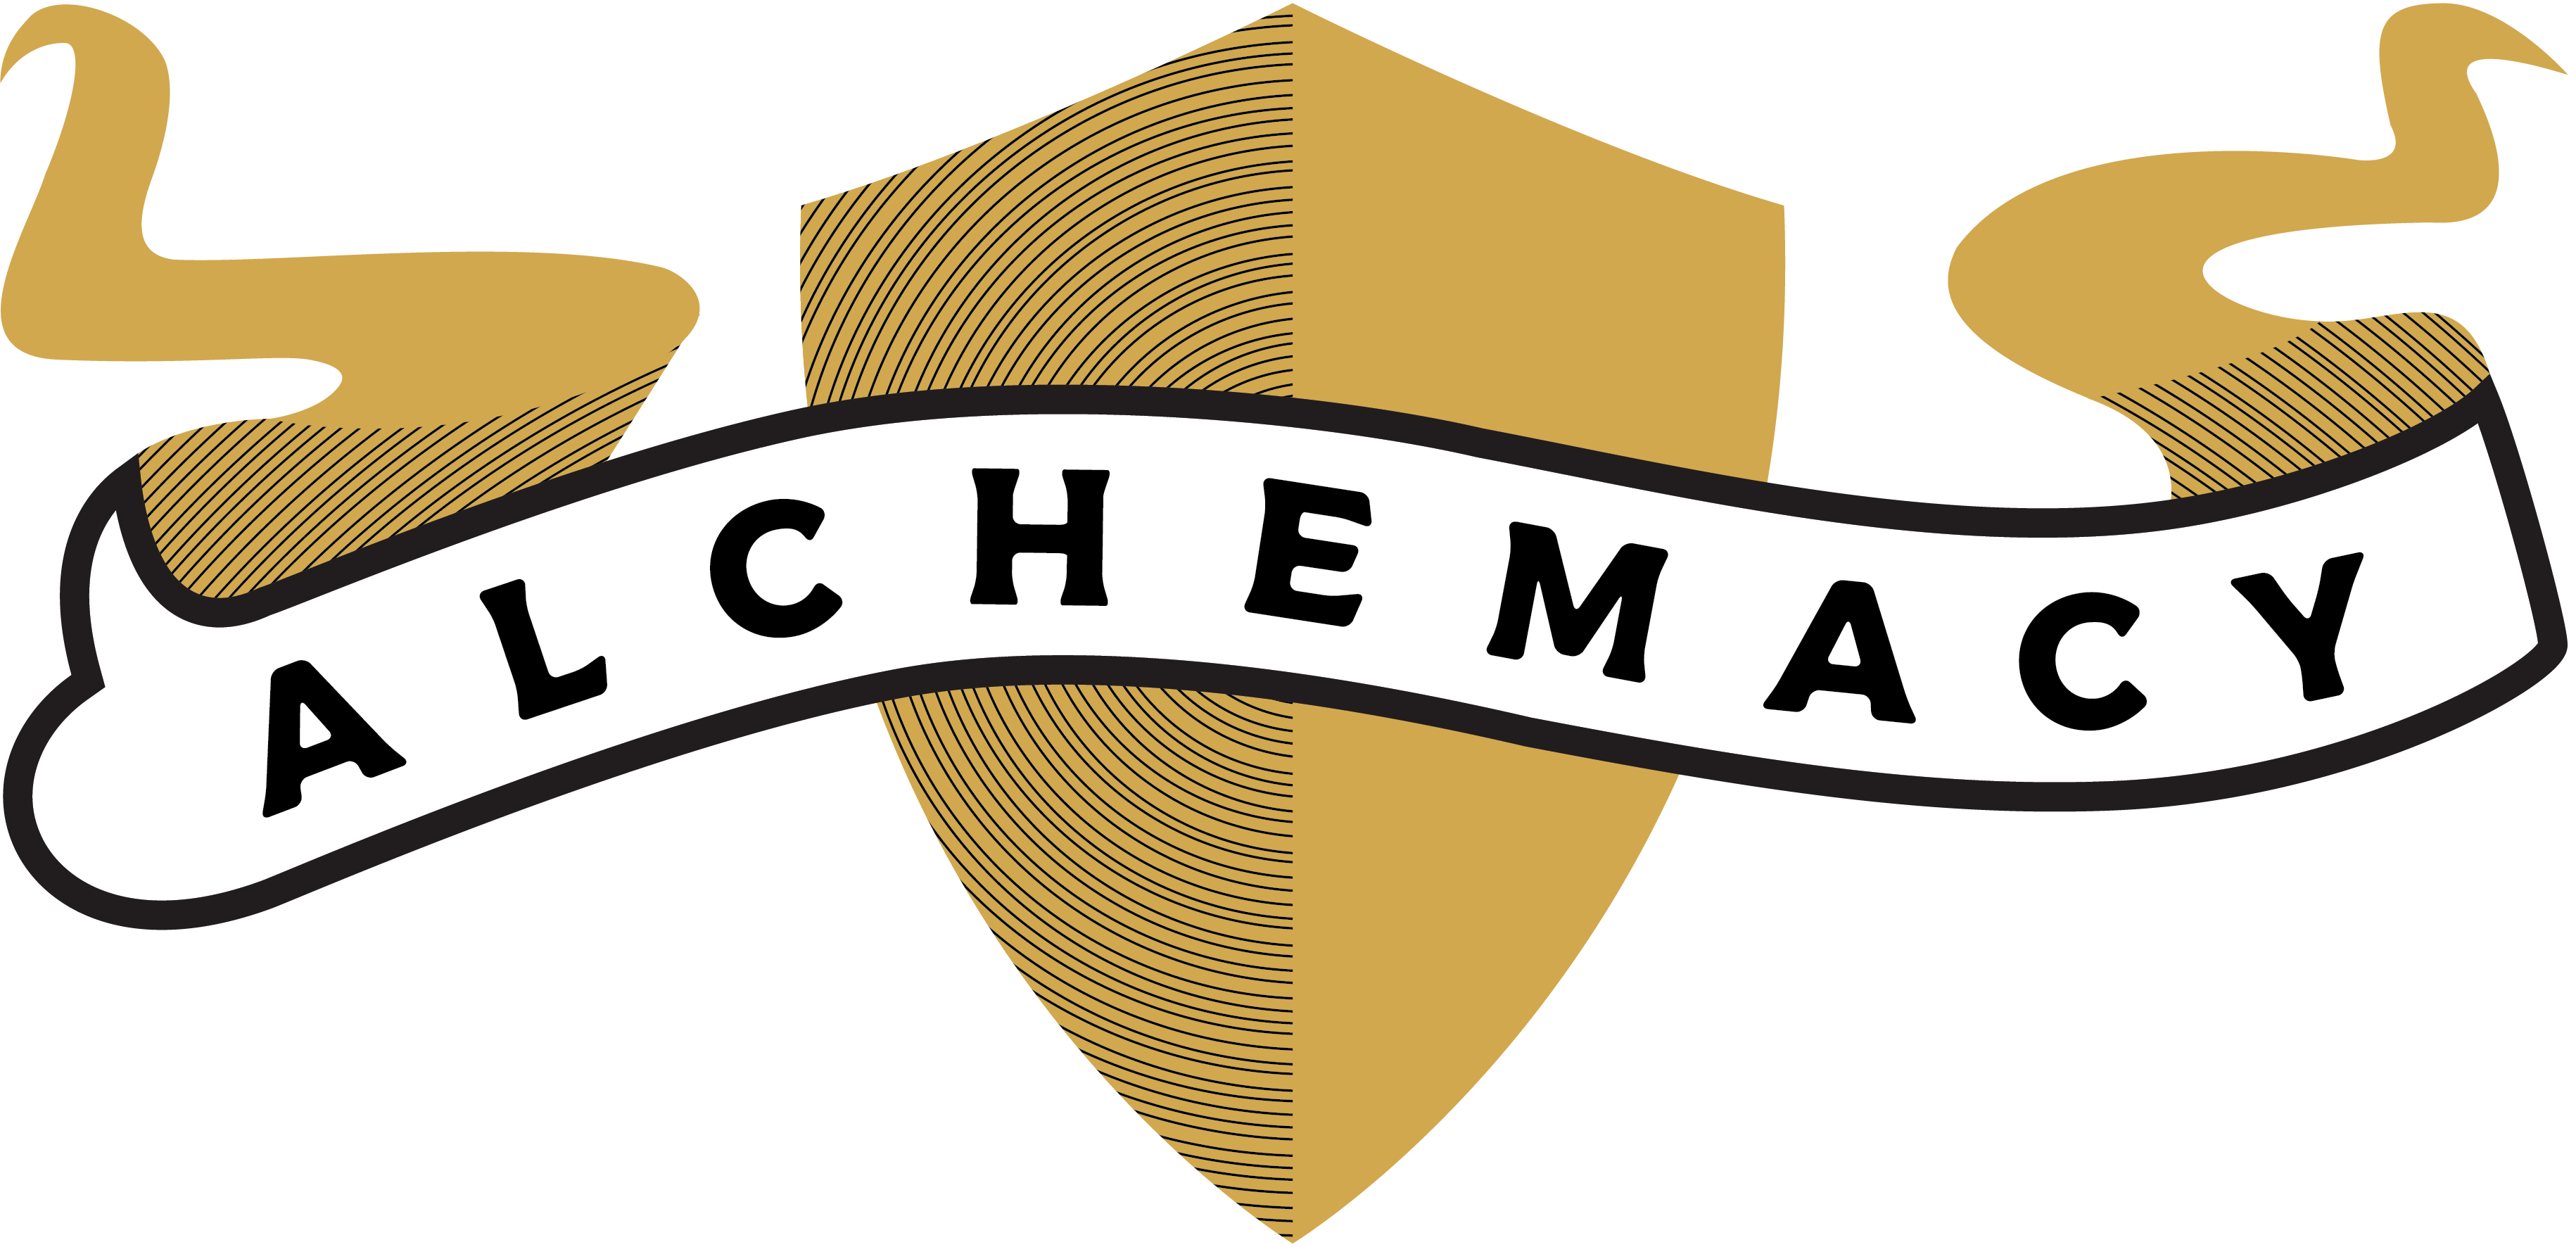 alchemacy-transparent-background.png